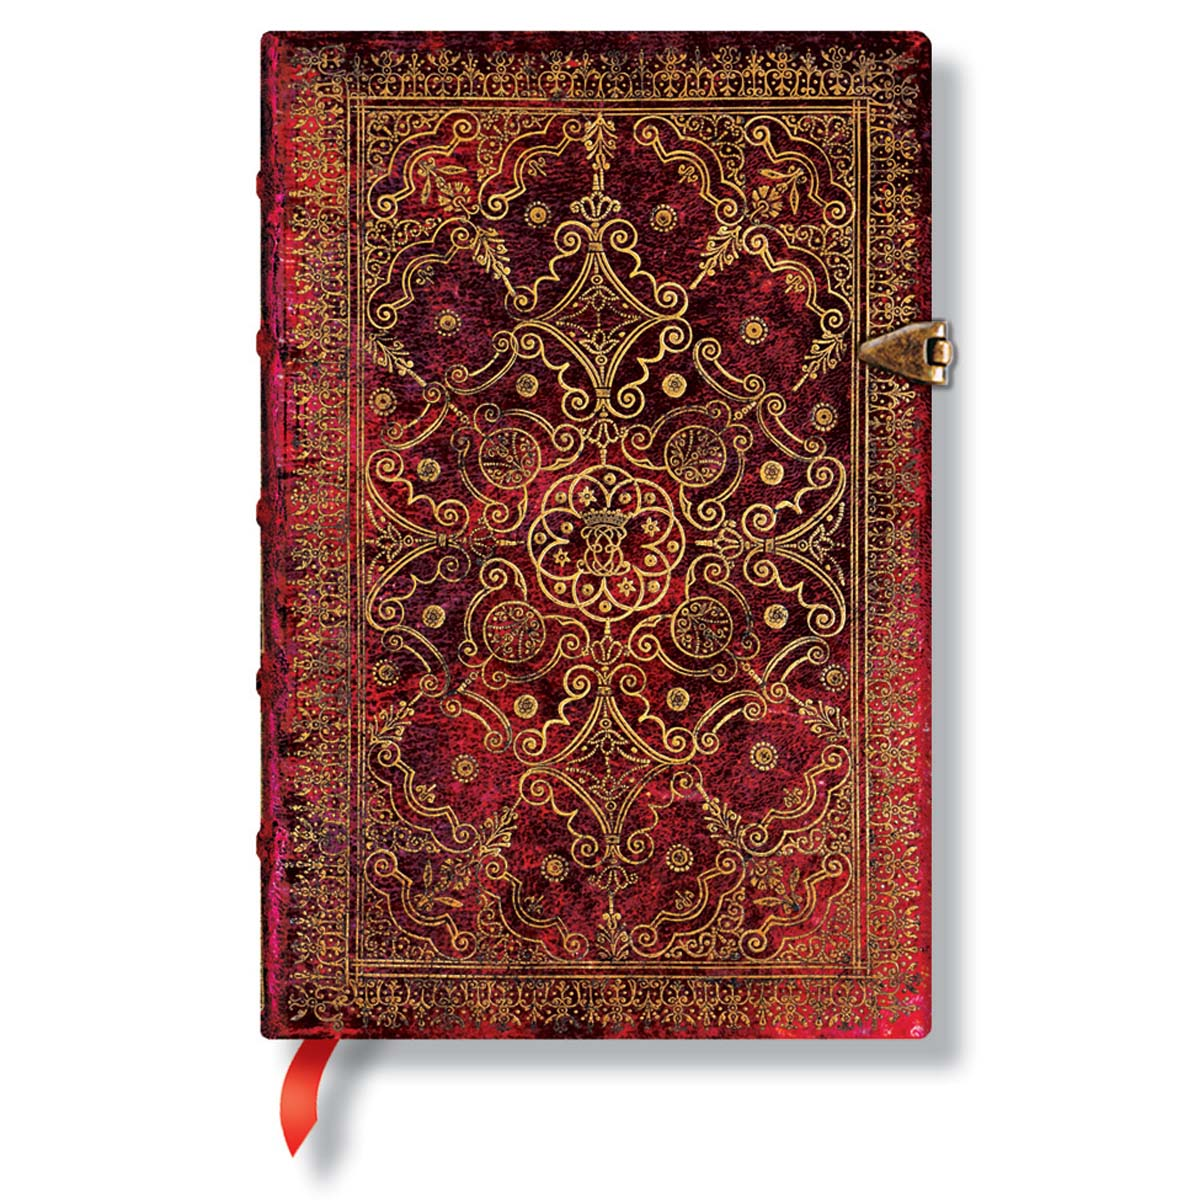 Paperblanks Equinoxe Carmine Mini 3.75 x 5.5 Inch Journal